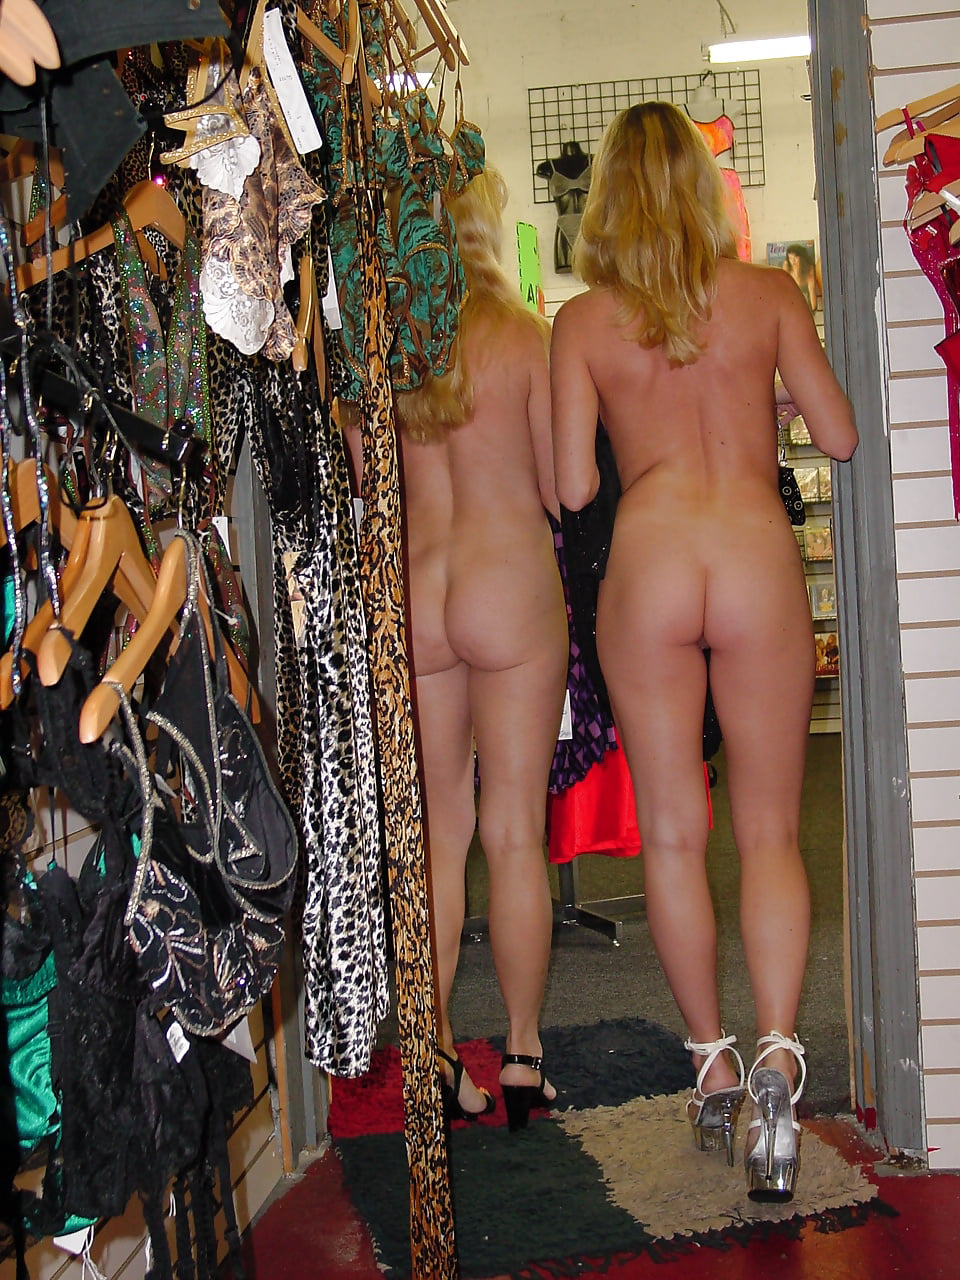 Teen Sister Changing Clothes On Hidden Cam